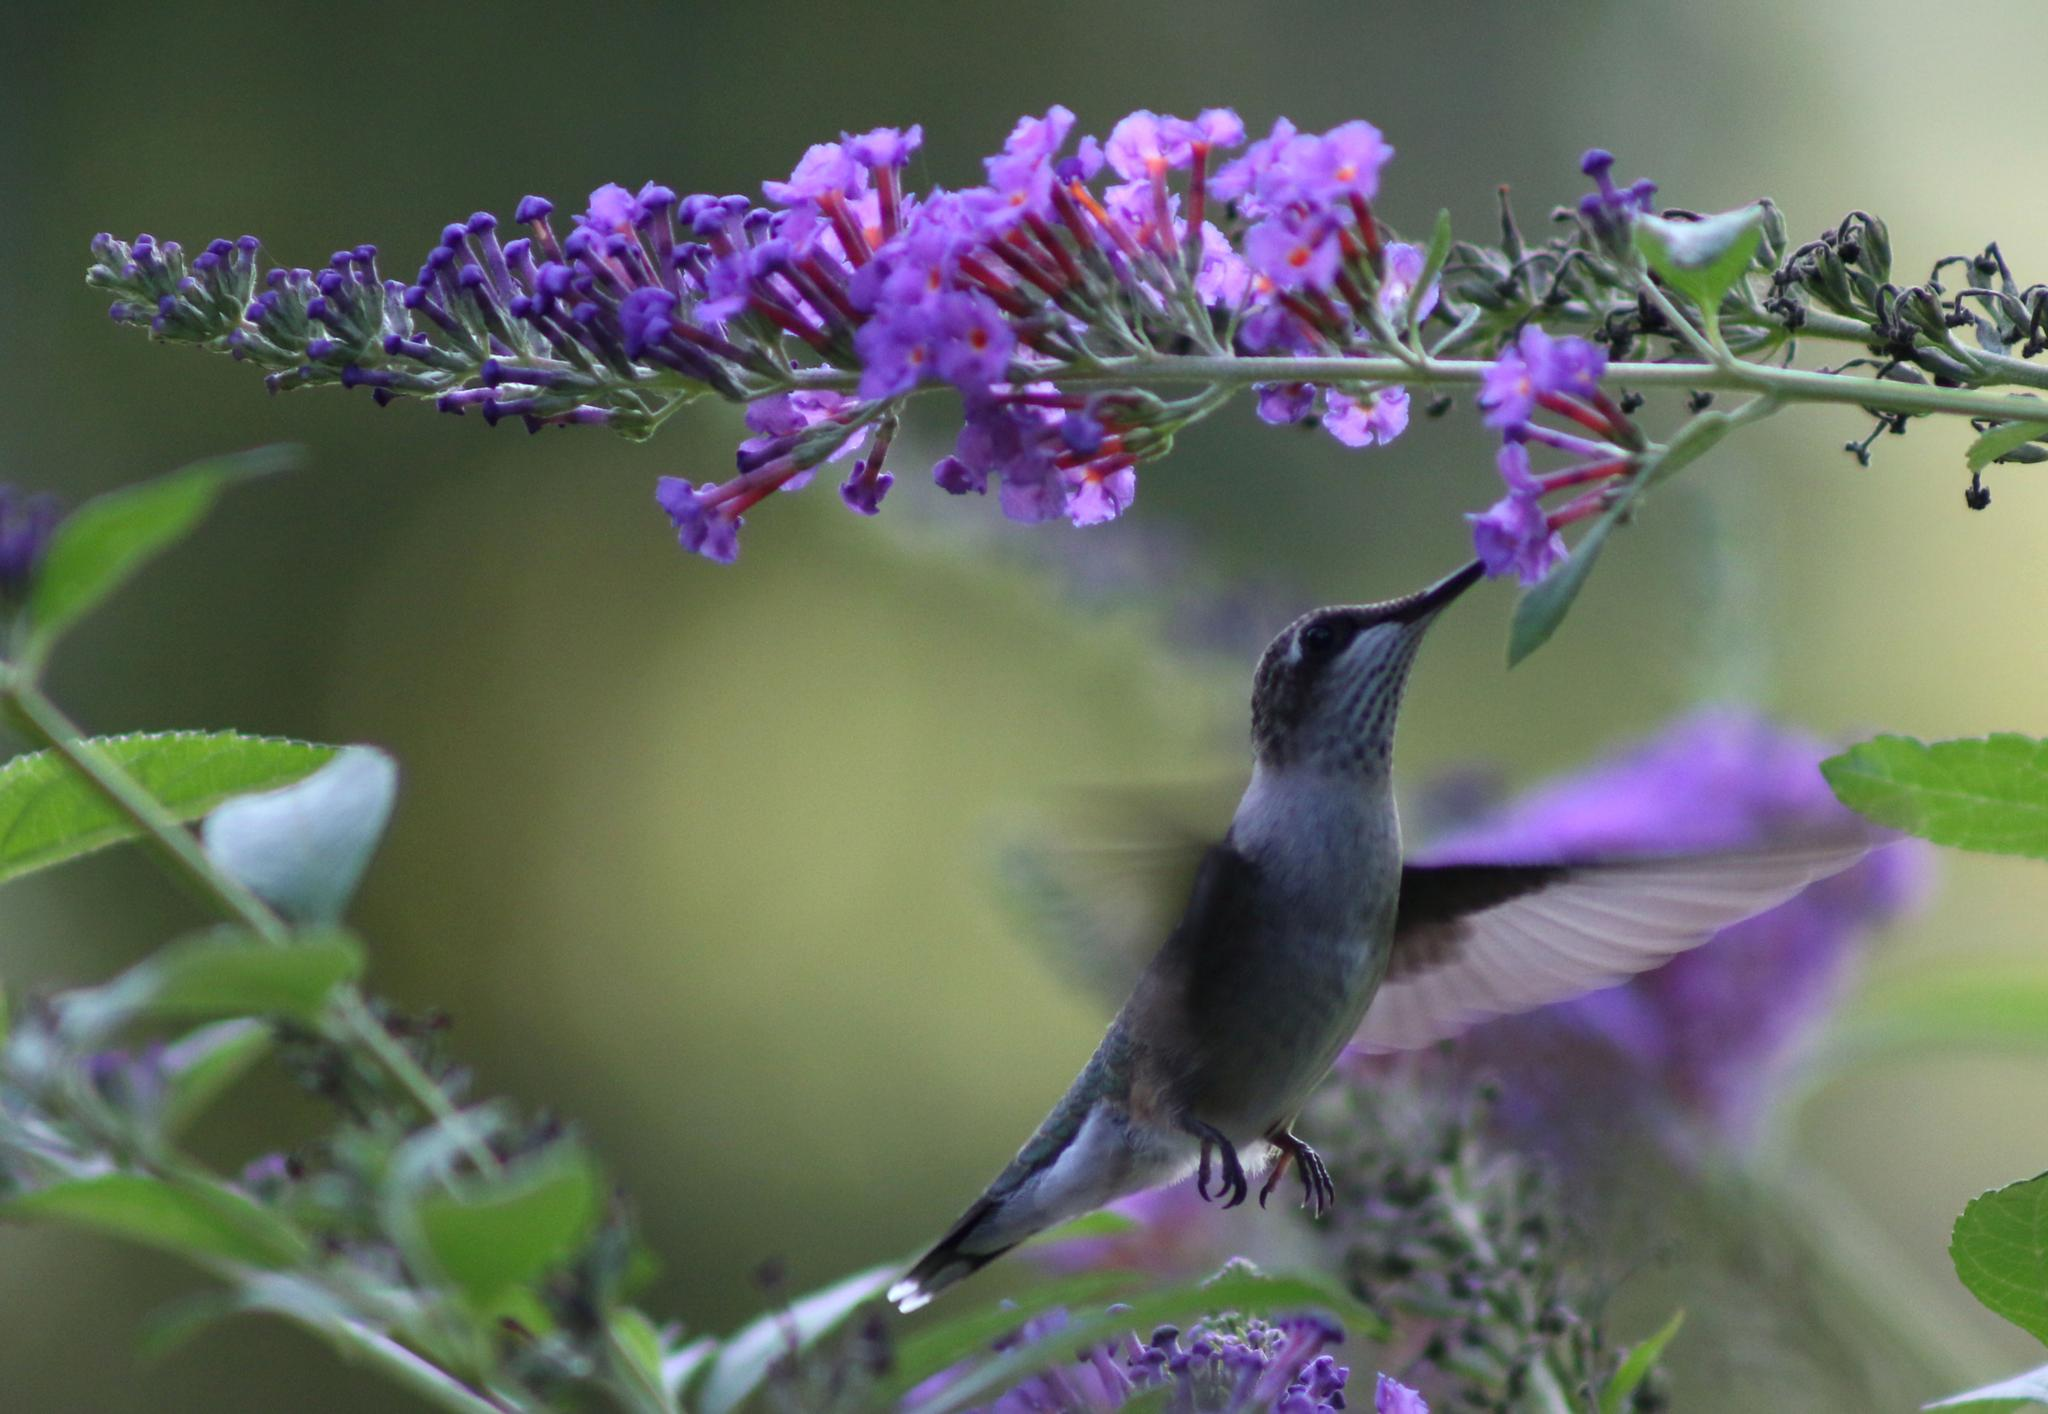 Sipping nectar by Cindy Stewart